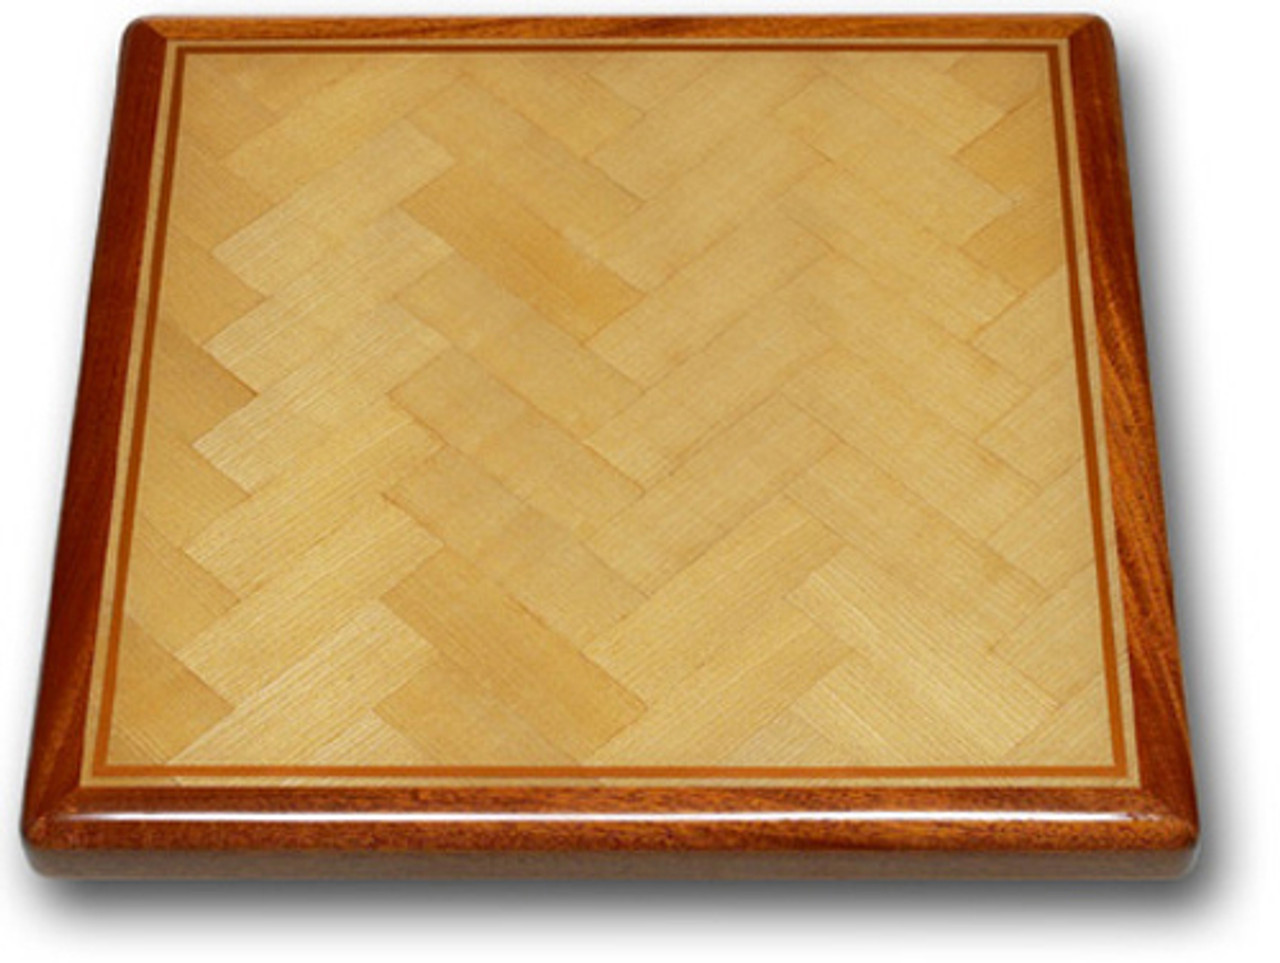 Hoffmann-MOBIL-Press-Ash-Herringbone-table-top-sample